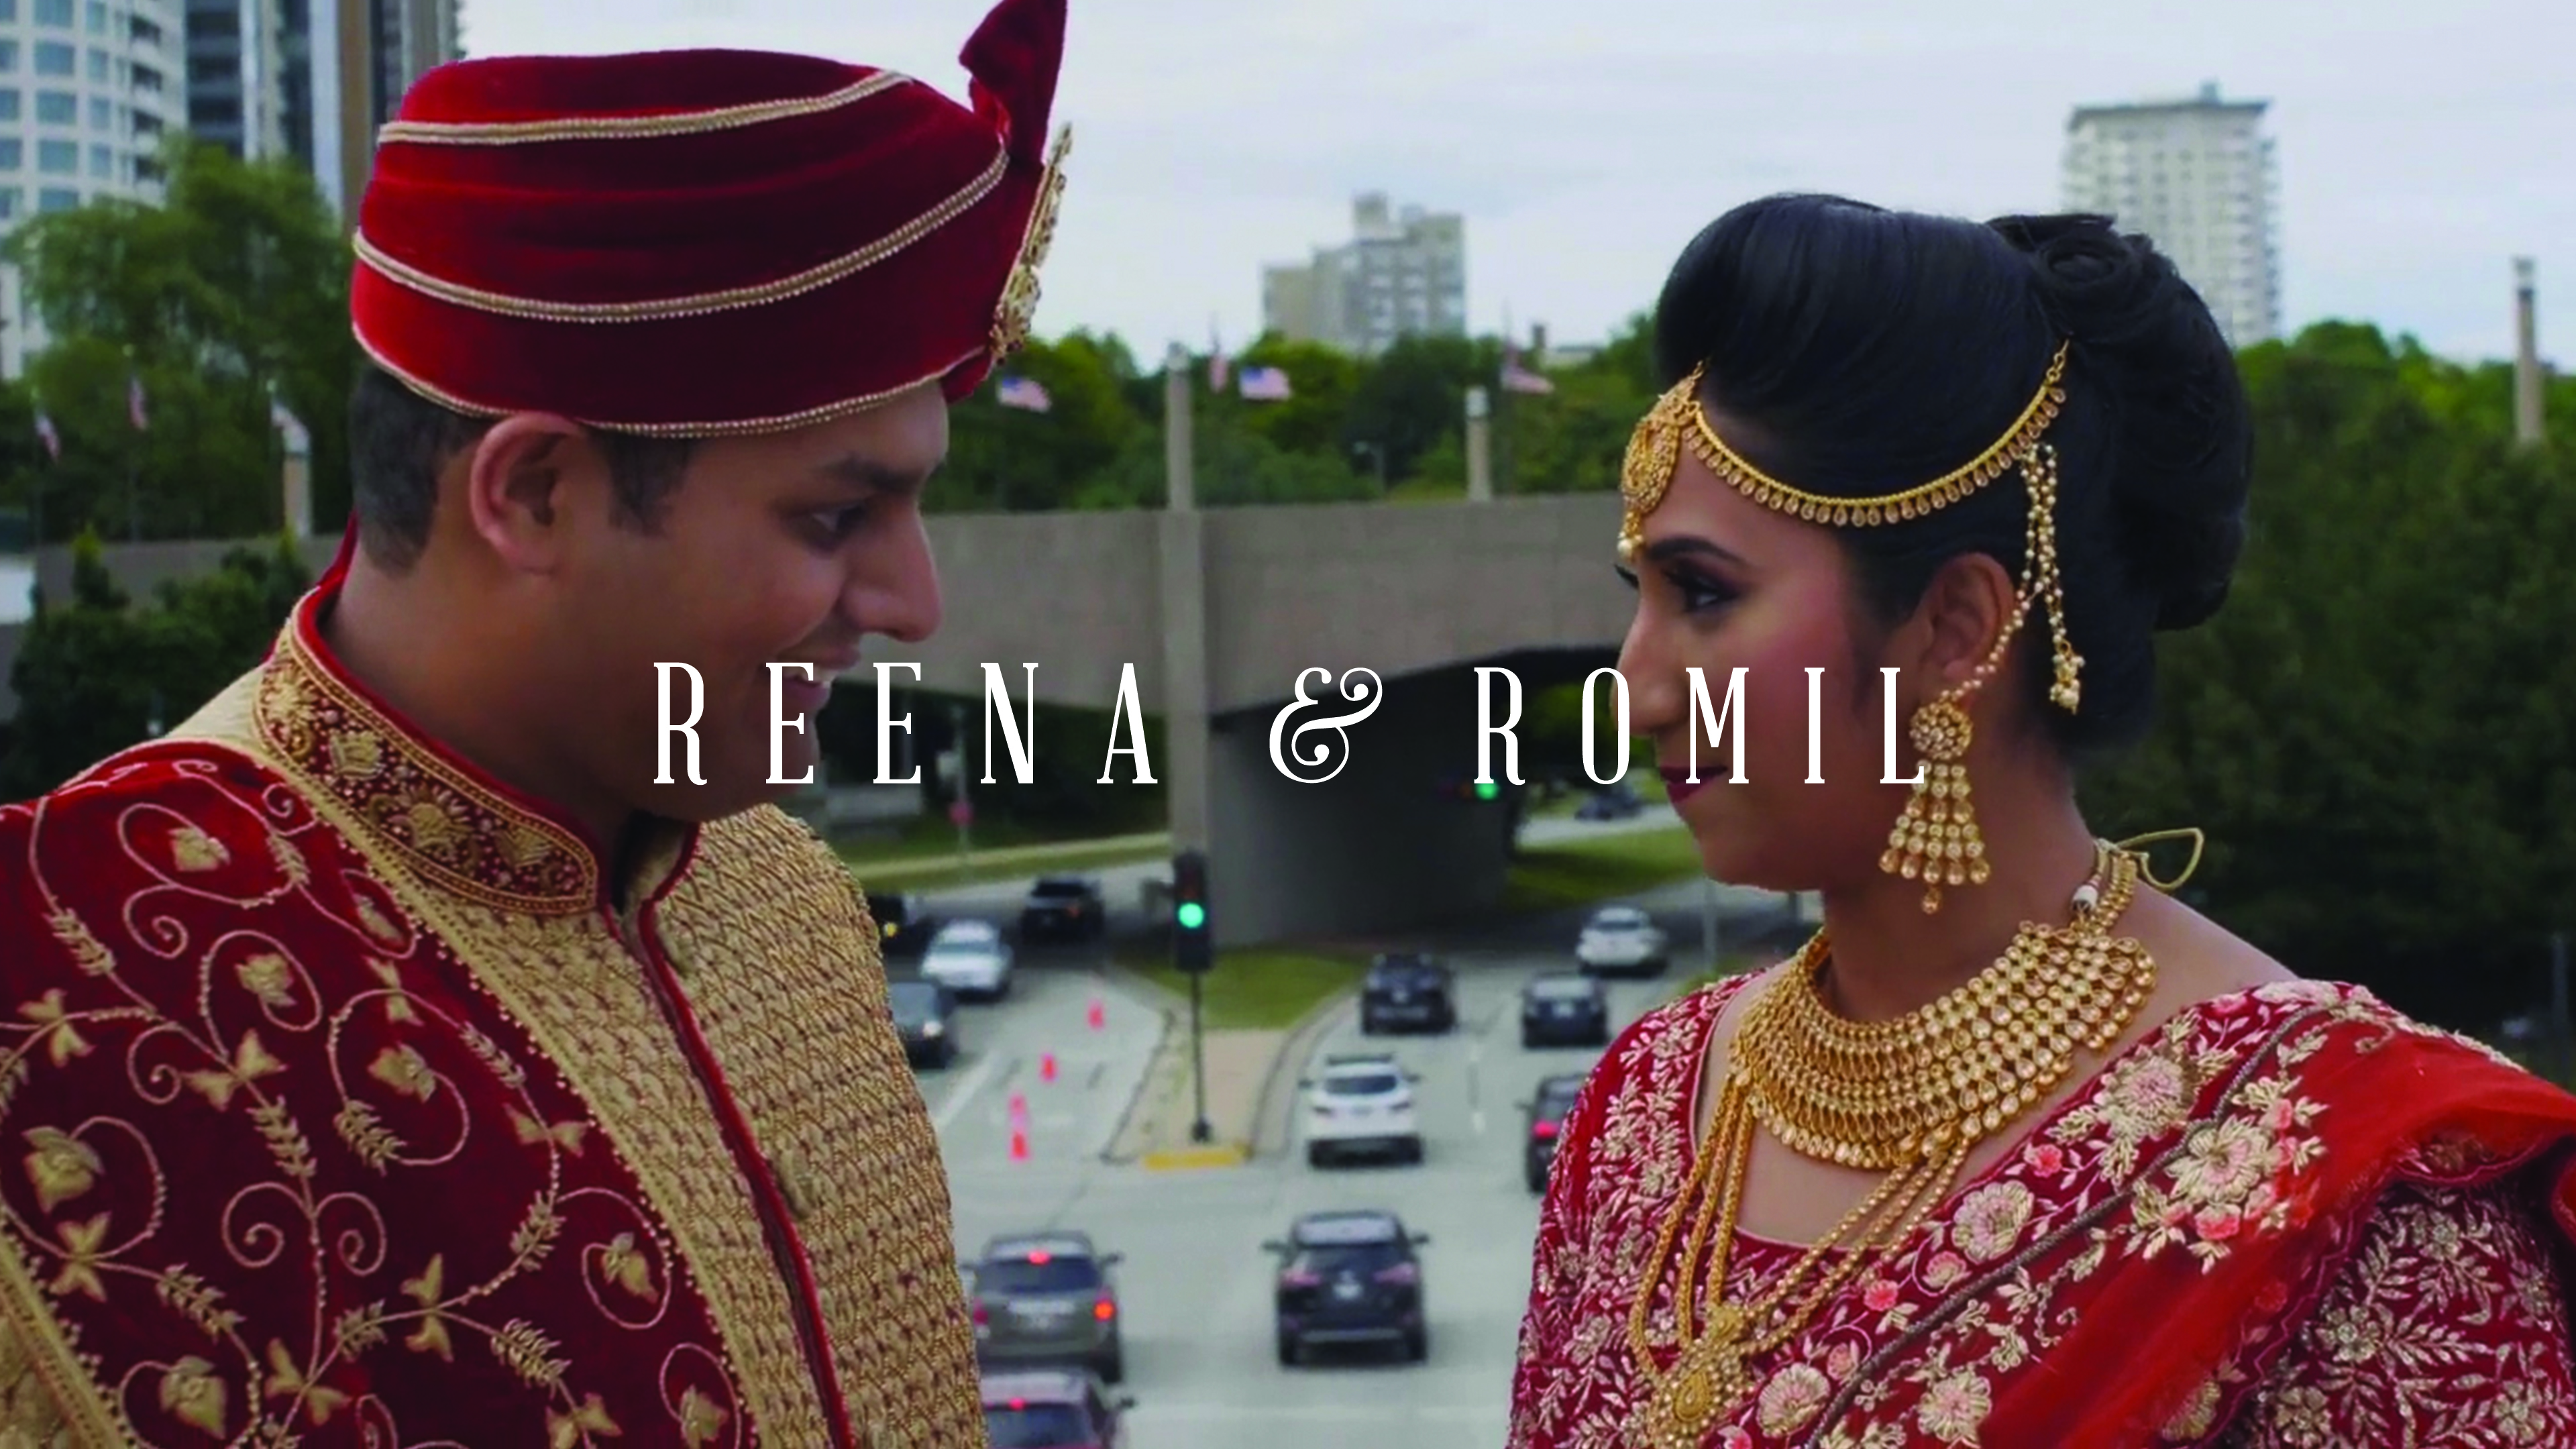 Reena + Romil | Milwaukee, Wisconsin | Milwaukee Art Museum